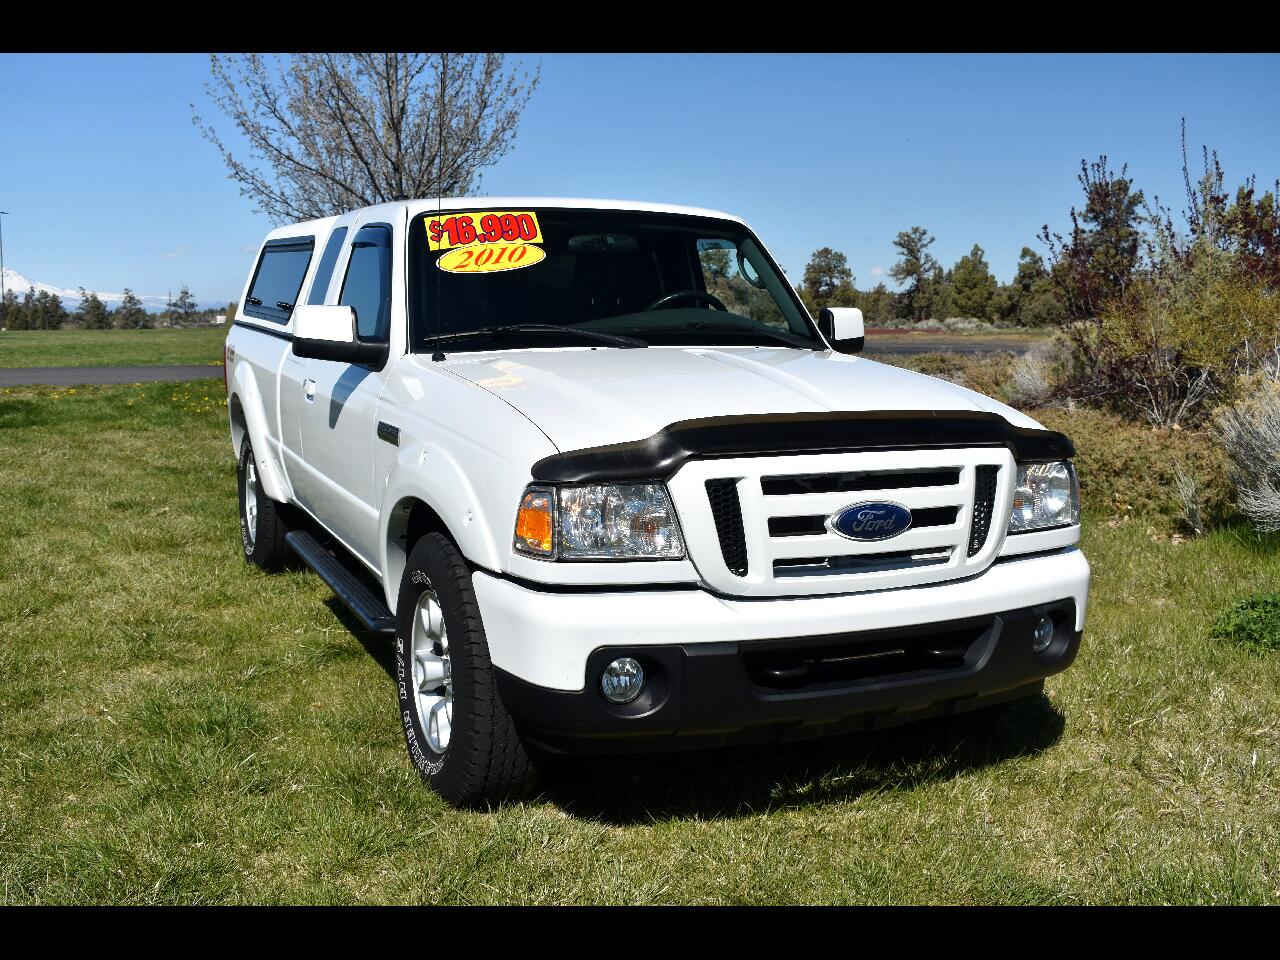 2010 Ford Ranger 4WD SUPERCAB XLT **LOW MILES**